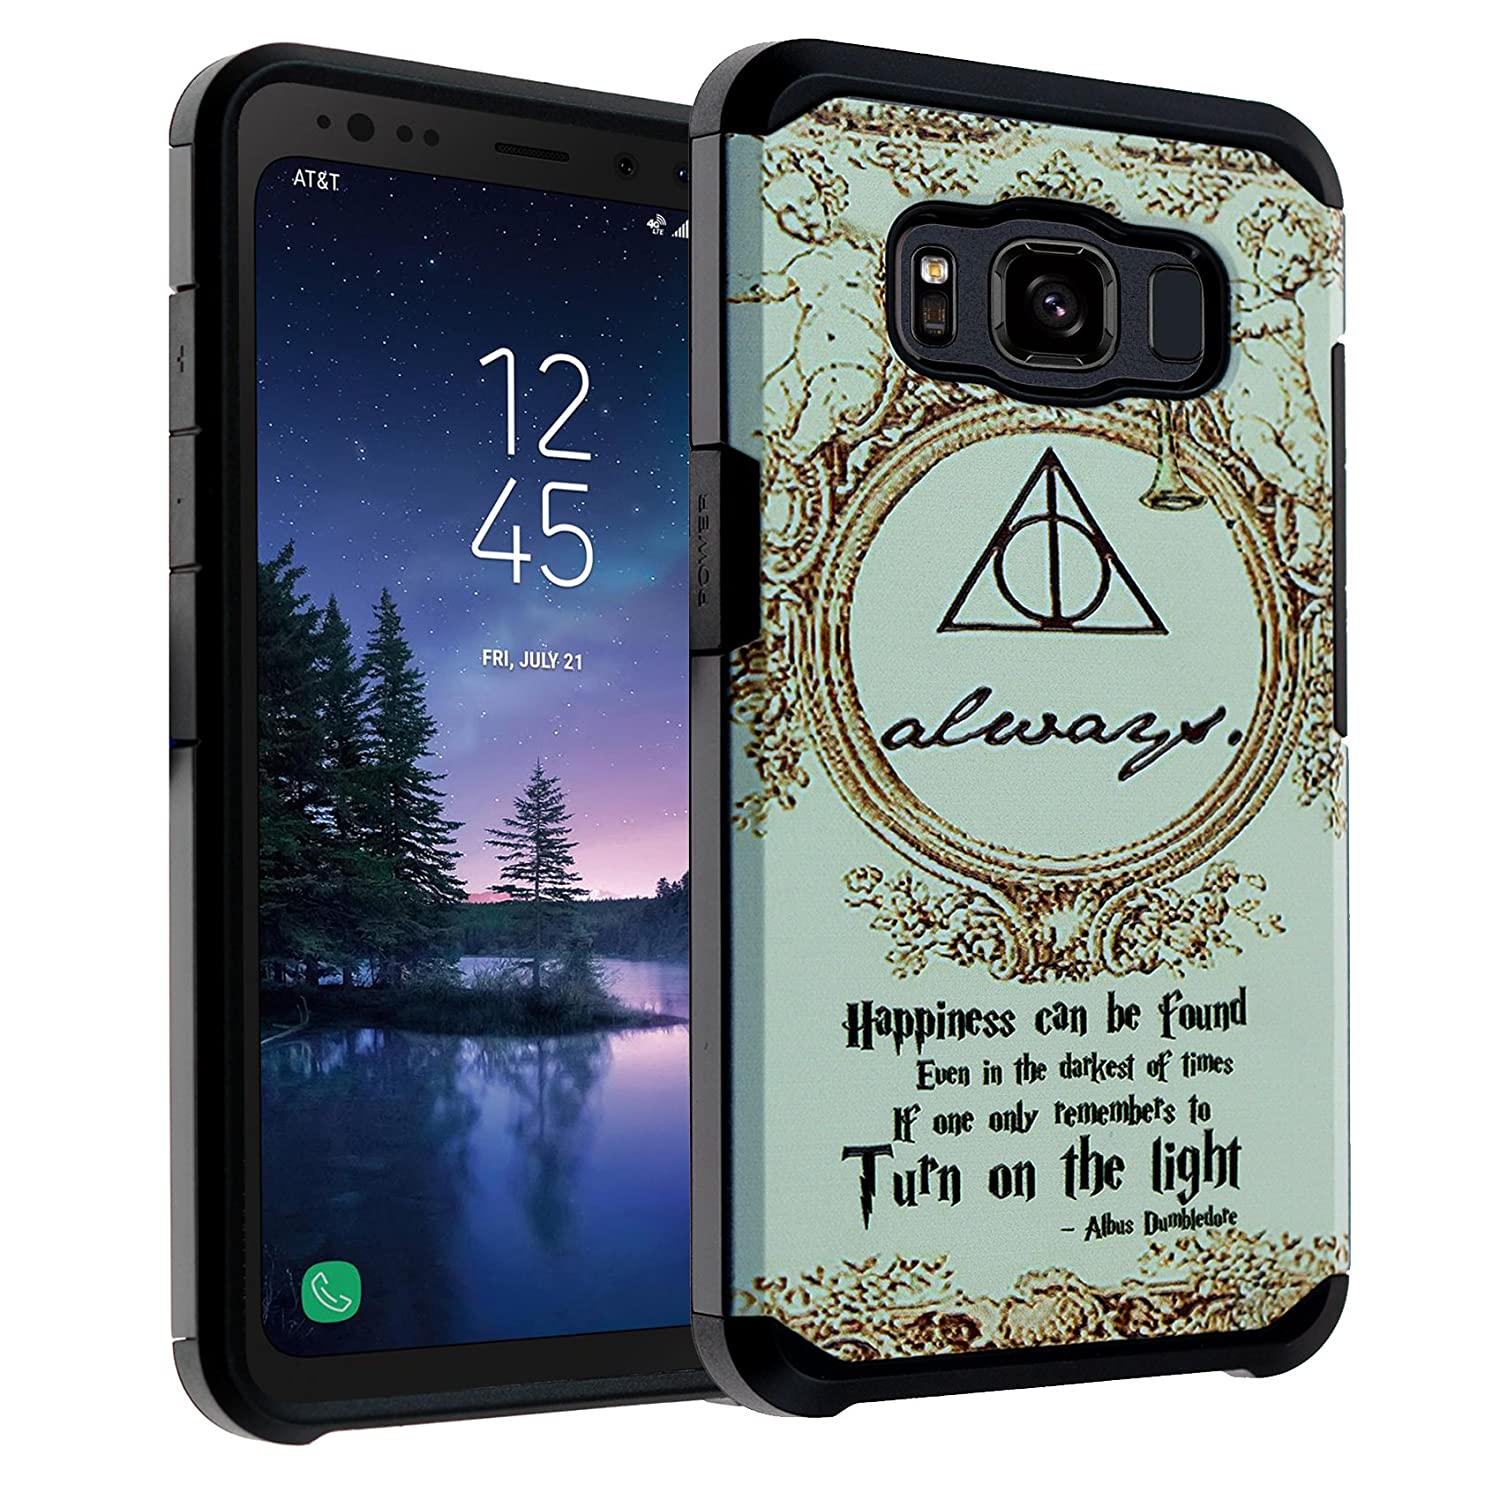 the best attitude 8b4ab b4568 Galaxy S8 Active Case Harry Potter Deathly Hallows, DURARMOR Dual Layer  Hybrid ShockProof Ultra Slim Fit Armor Air Cushion Defender Protector Cover  ...